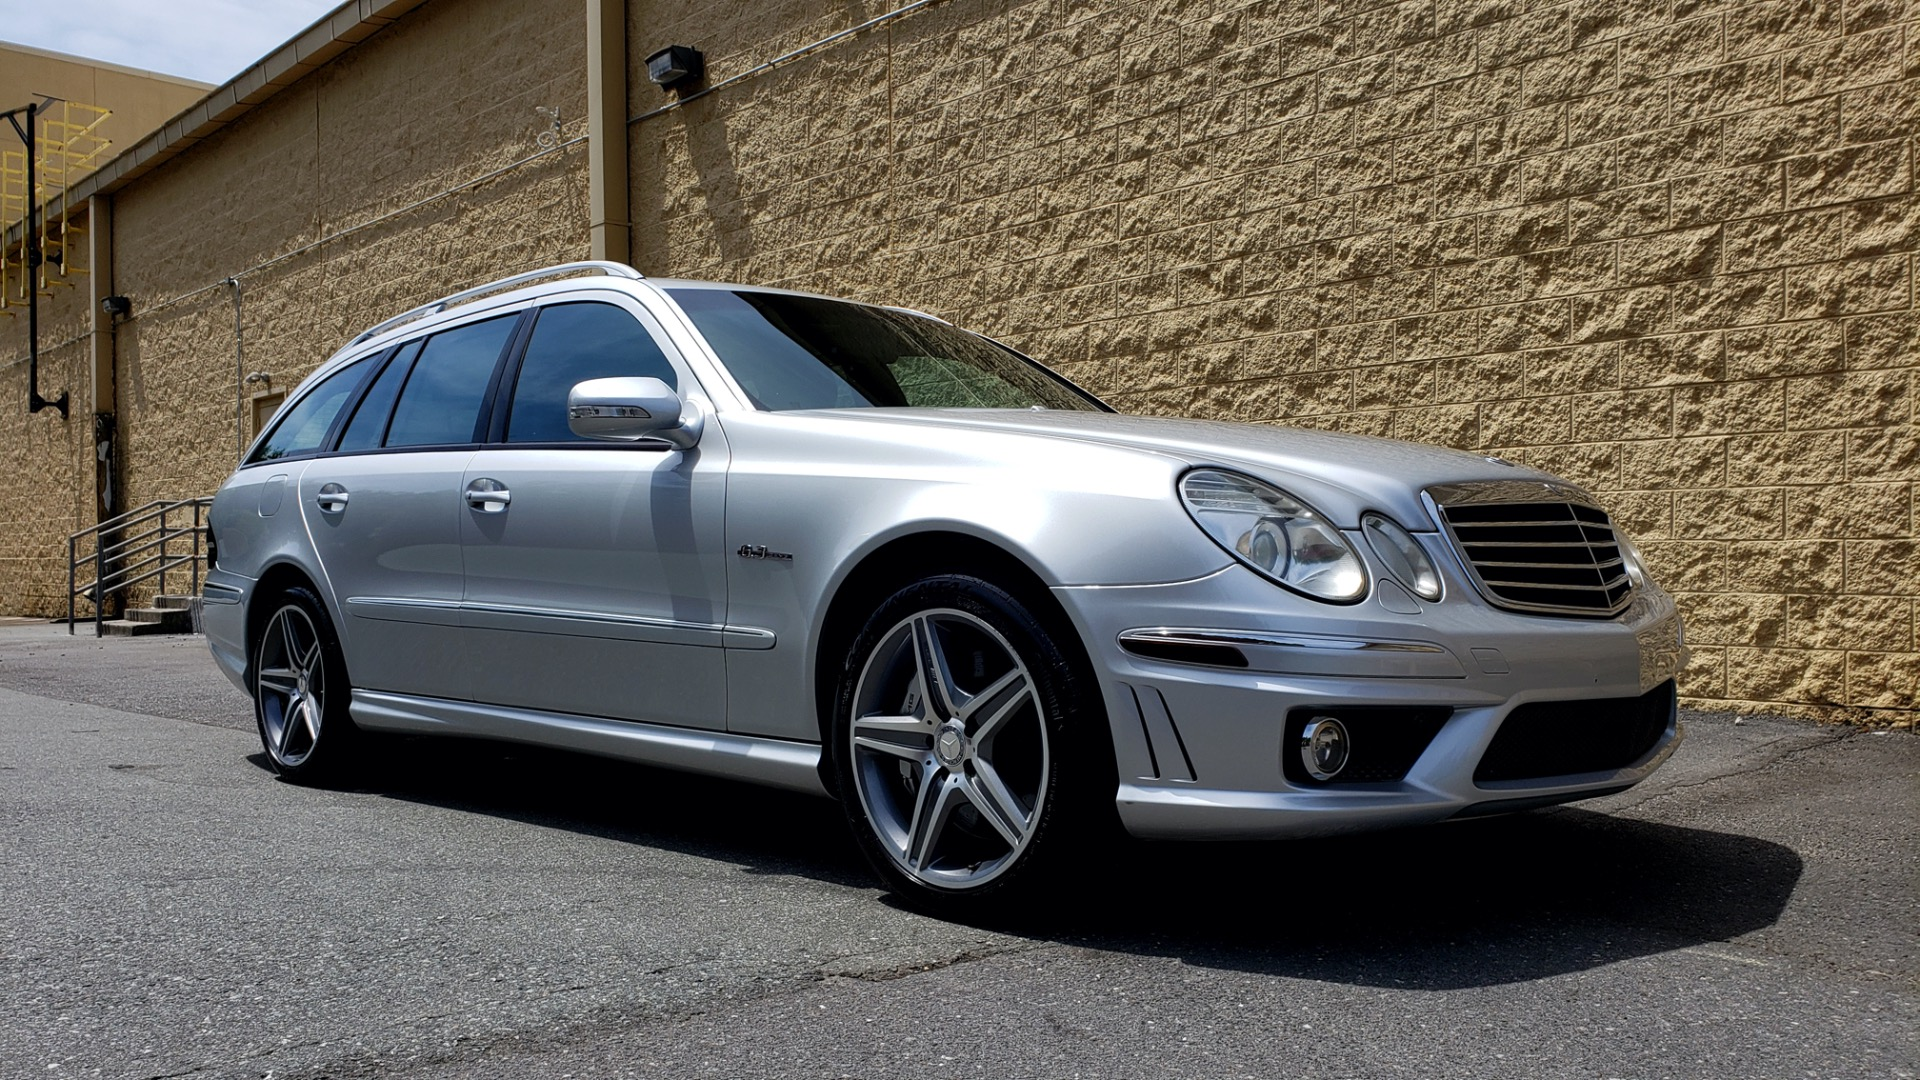 Used 2007 Mercedes-Benz E-Class 6.3L AMG for sale Sold at Formula Imports in Charlotte NC 28227 4